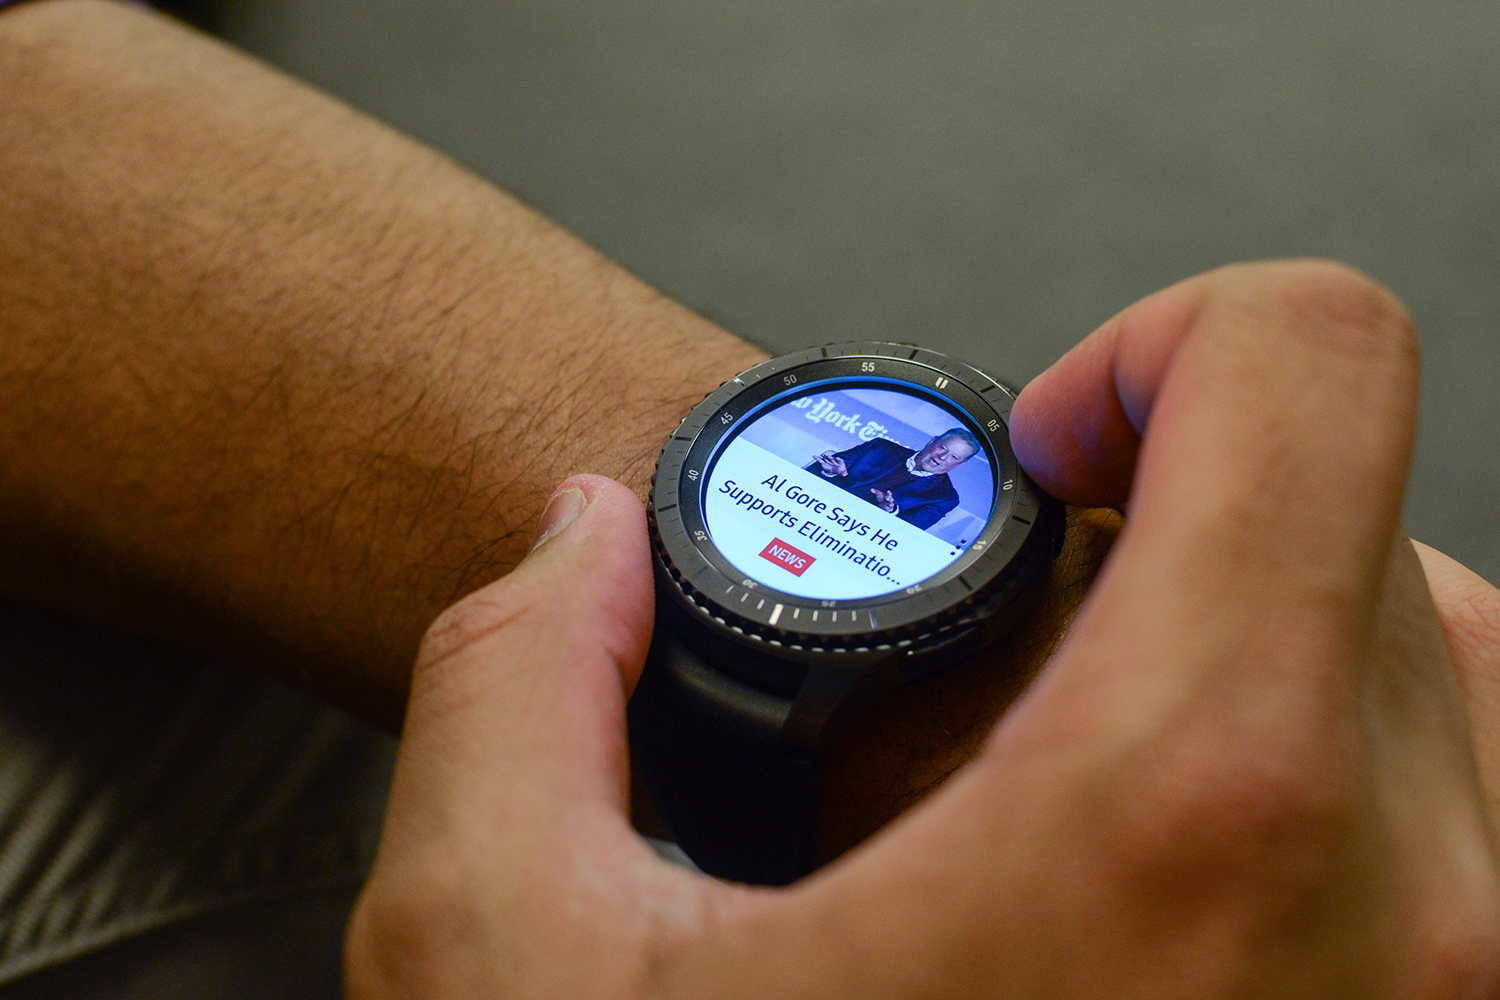 samsung s value pack update brings goodies to gear s3. Black Bedroom Furniture Sets. Home Design Ideas